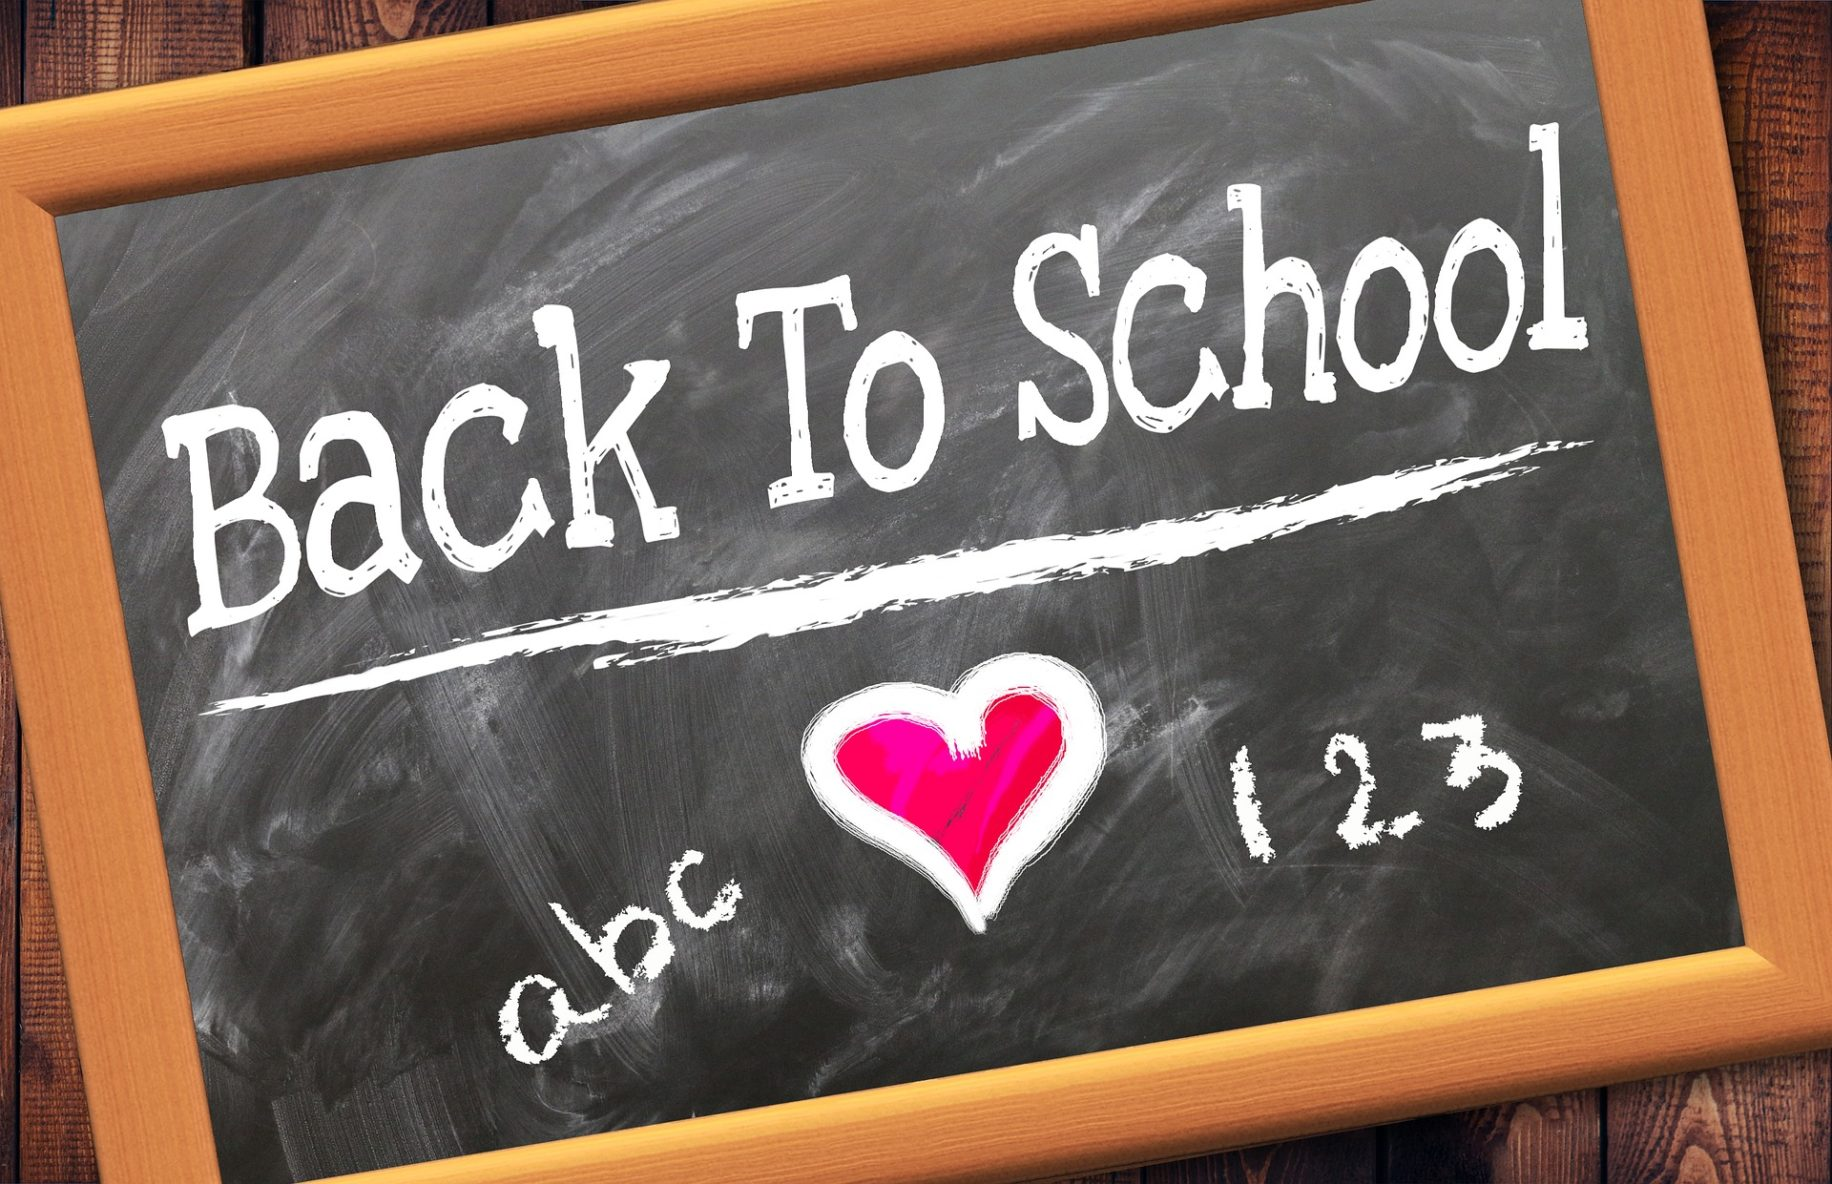 Back to School \ Image: Creative Commons